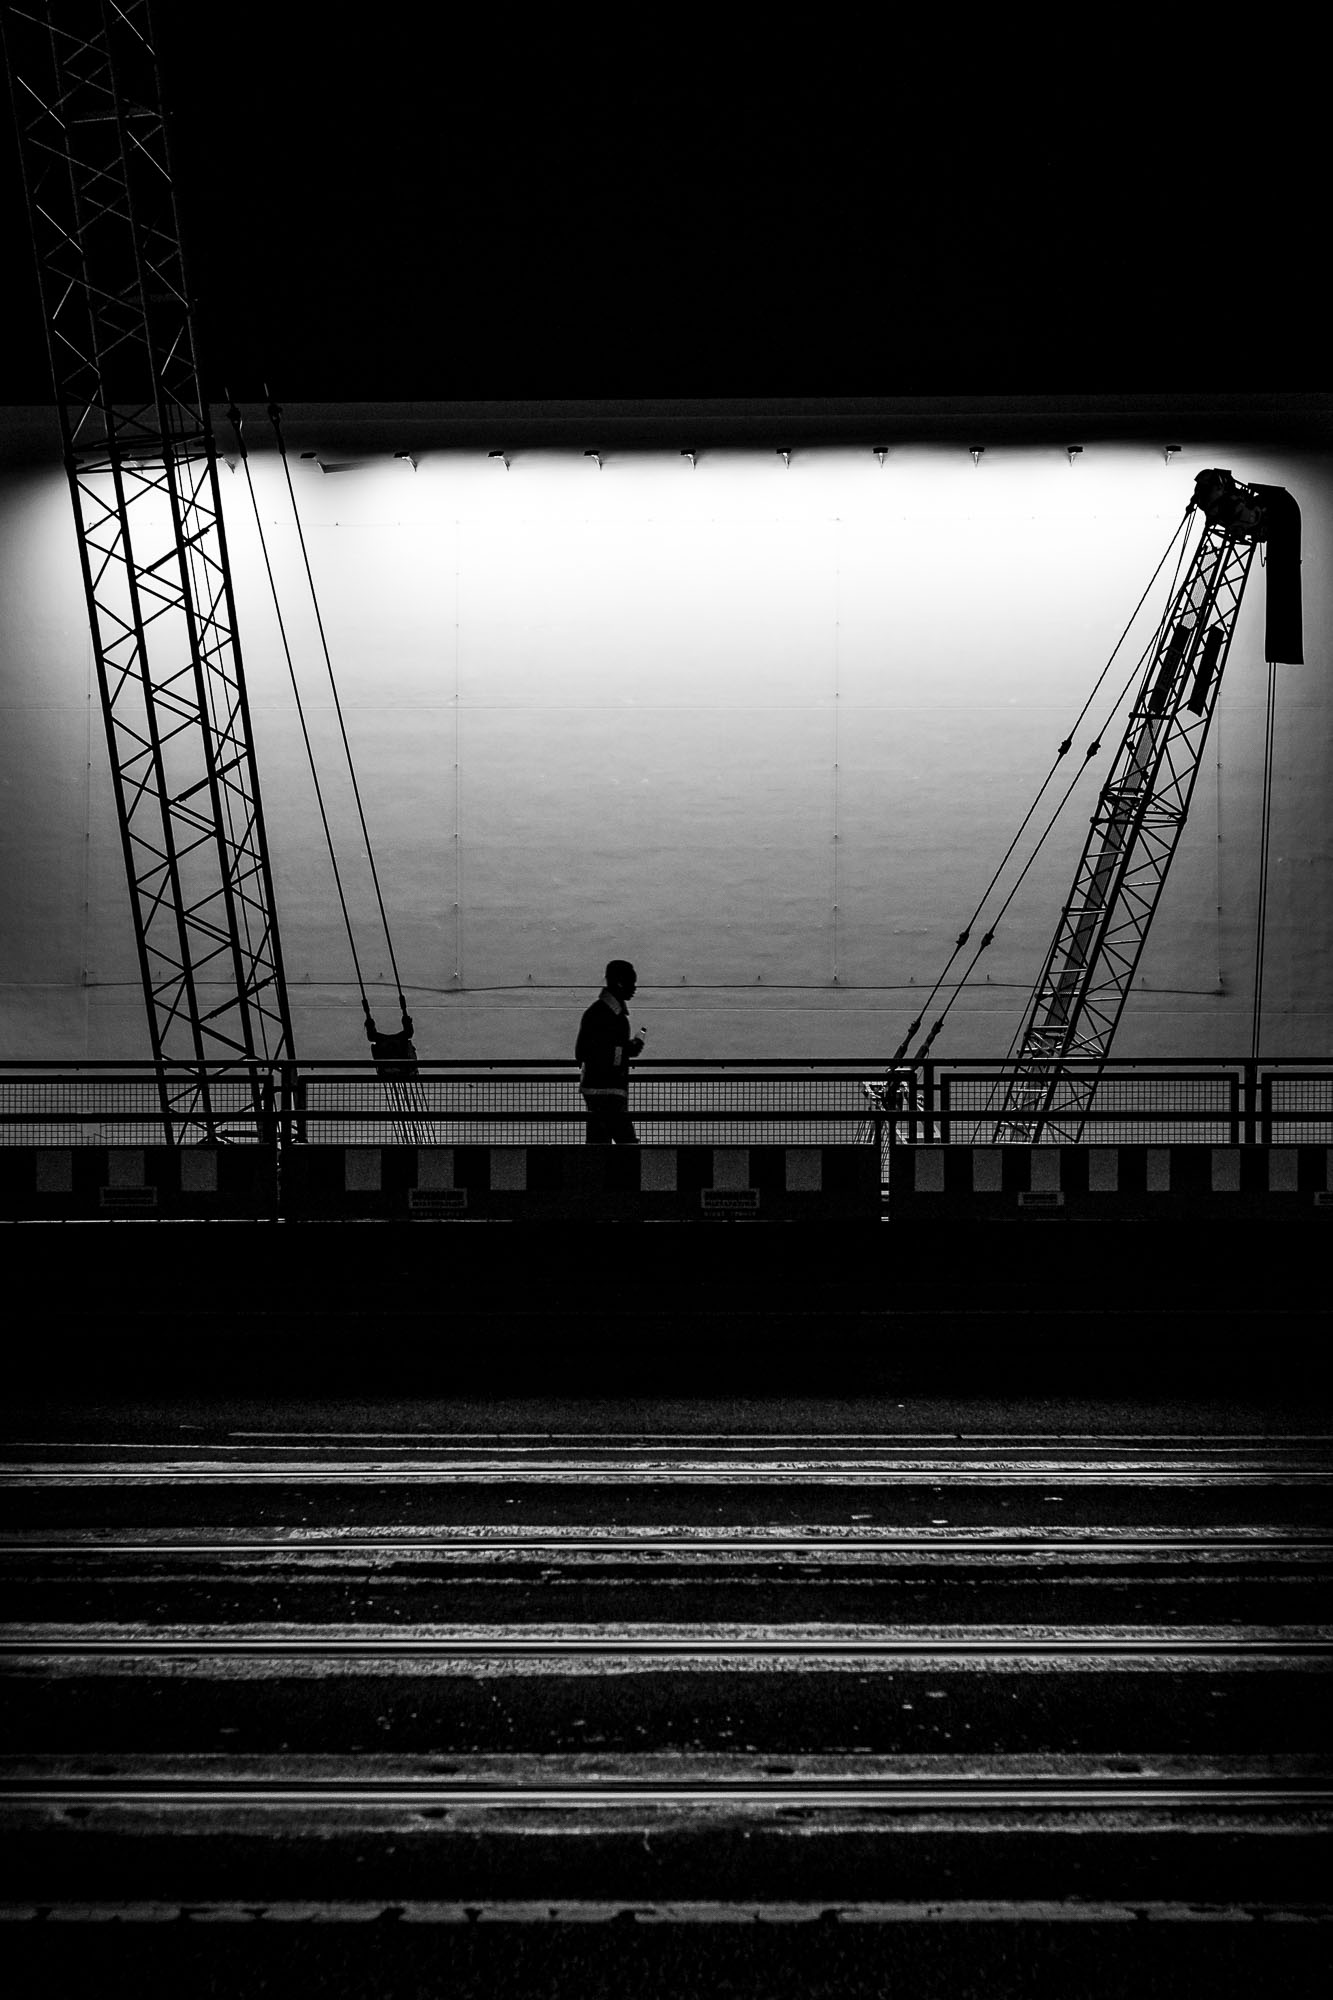 A silhouetted figure walks in front of a brighly illuminated white wall, with two cranes on either side